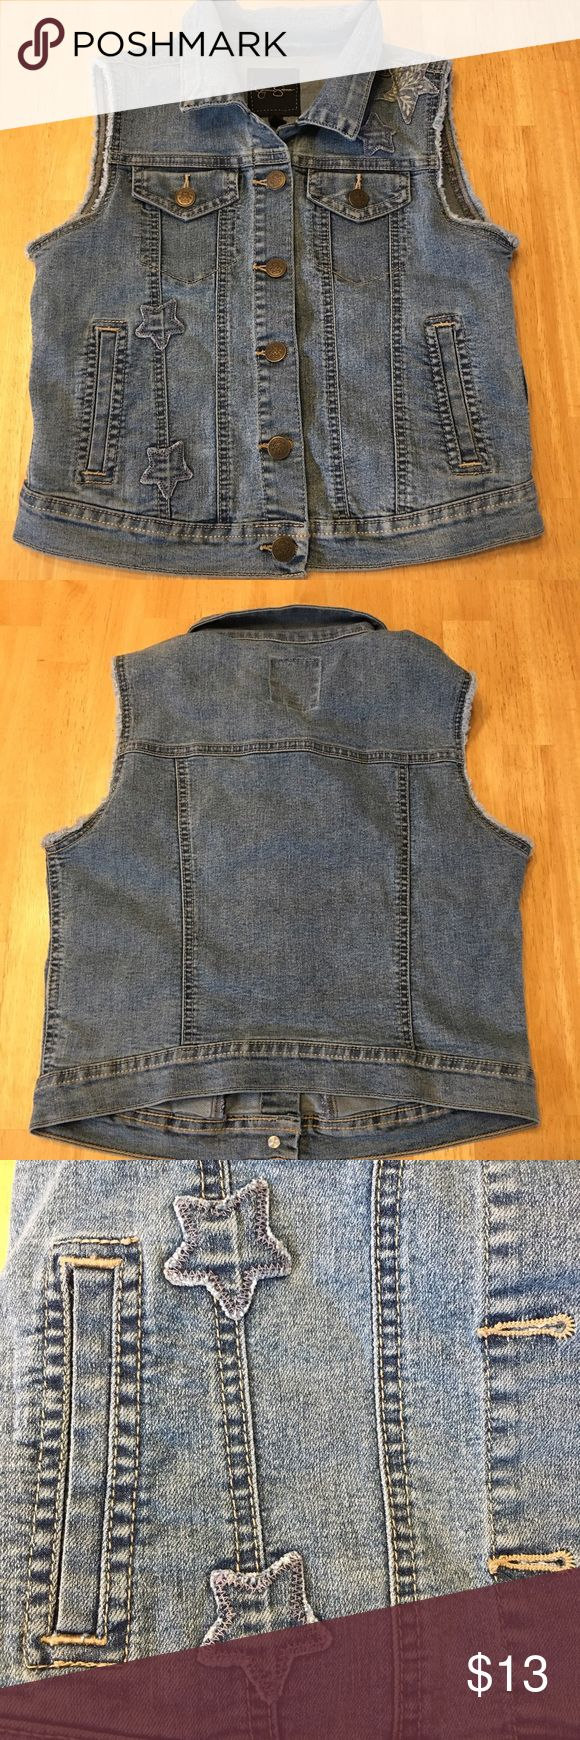 Jessica Simpson girls L 12 14 Denim vest cropped Girls Sz 12-14 Jessica Simpson vest Sz Large has cute designer fray & distressed star patches. This is a girls/tween , not ladies. Smoke free home. Ask ?'s prior to purchase as all sales are final. Jessica Simpson Jackets & Coats Vests